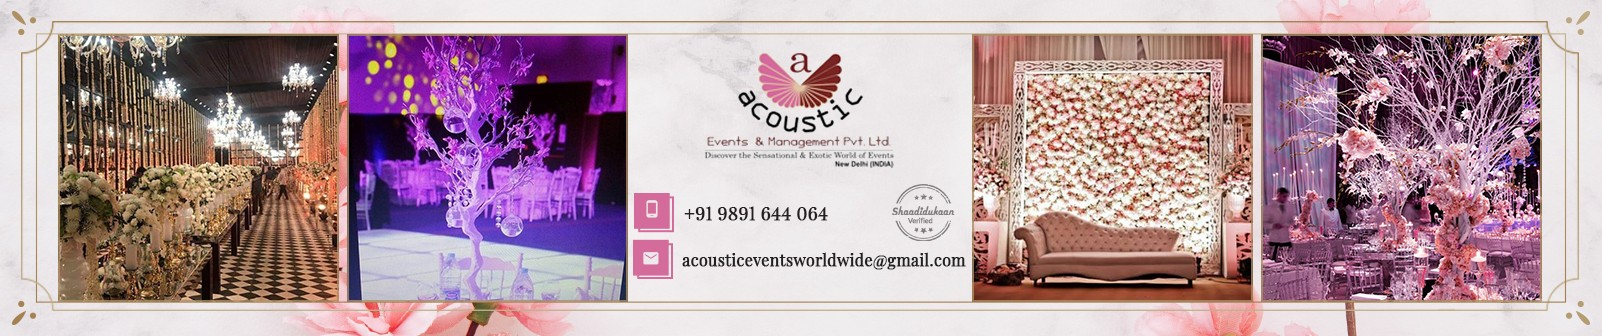 acoustic-events